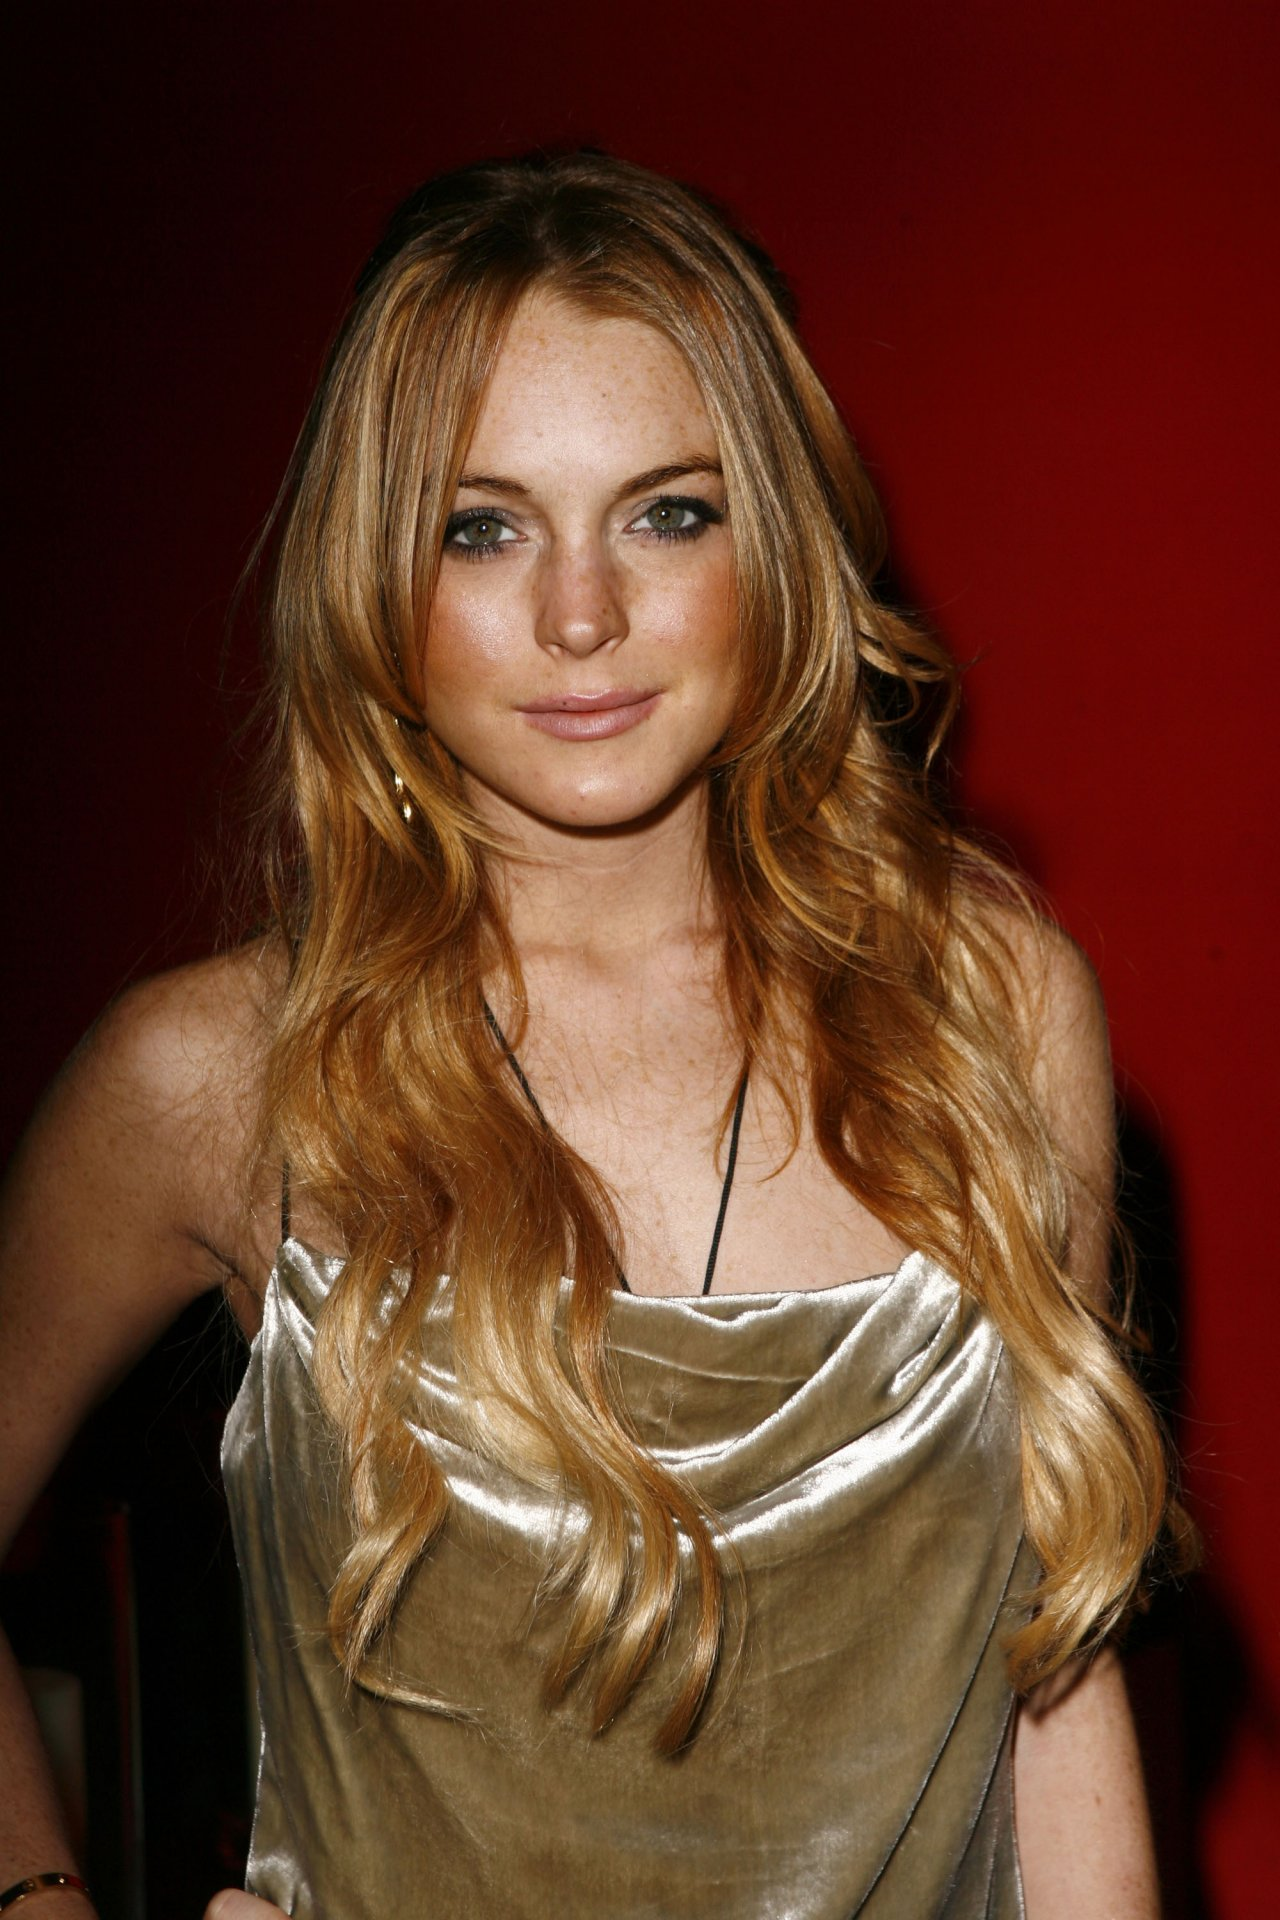 All lindsay lohan pictures Lindsay Lohan Pictures, Photos Images - Zimbio